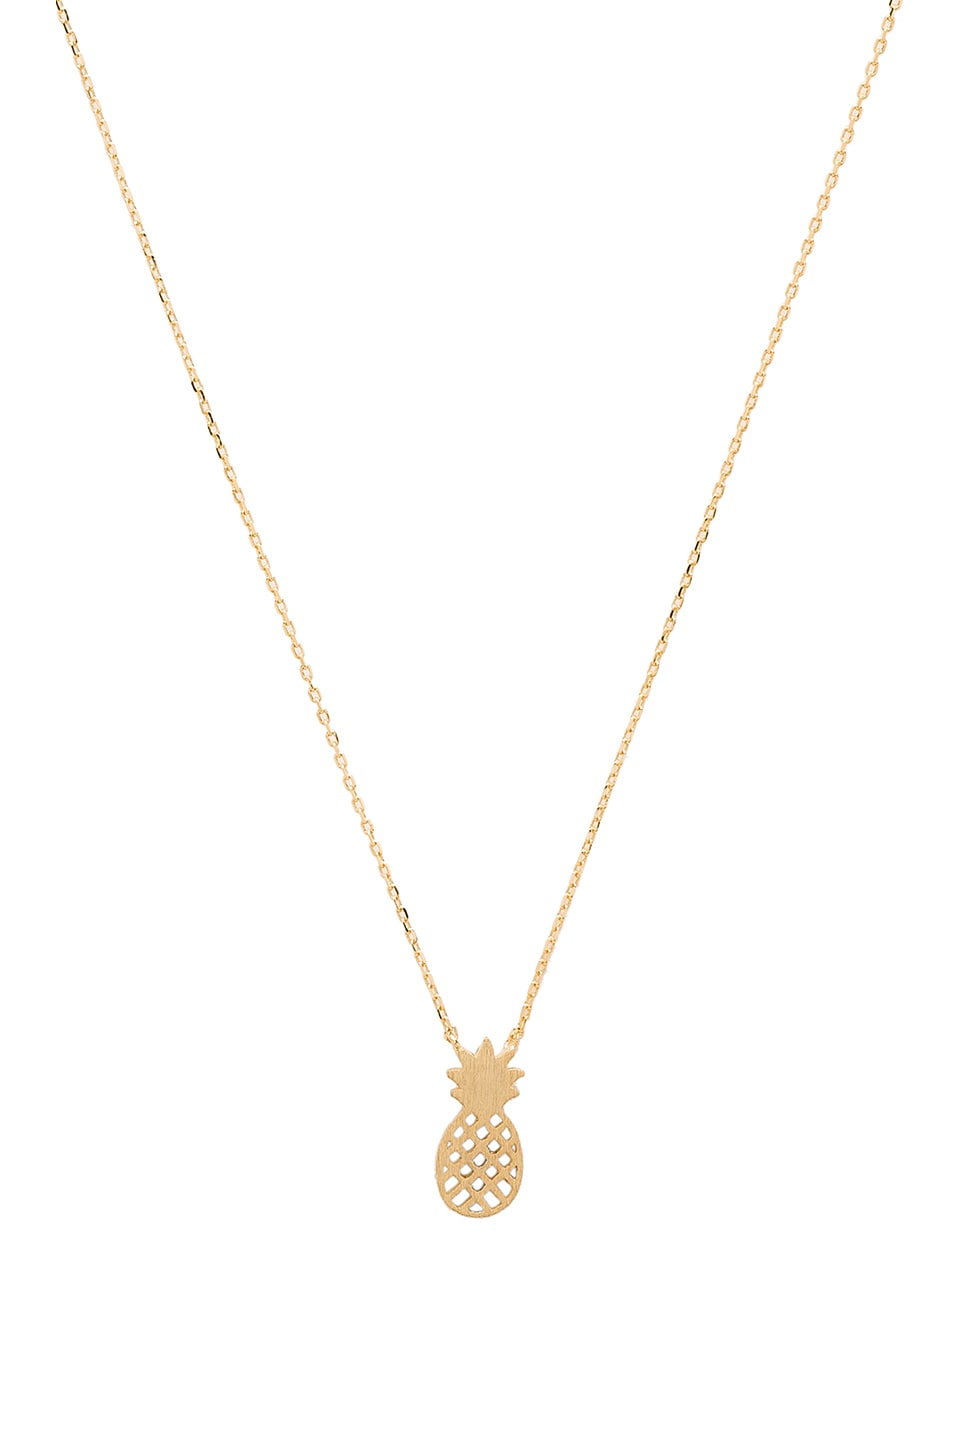 Wanderlust + Co Pineapple Necklace in Gold